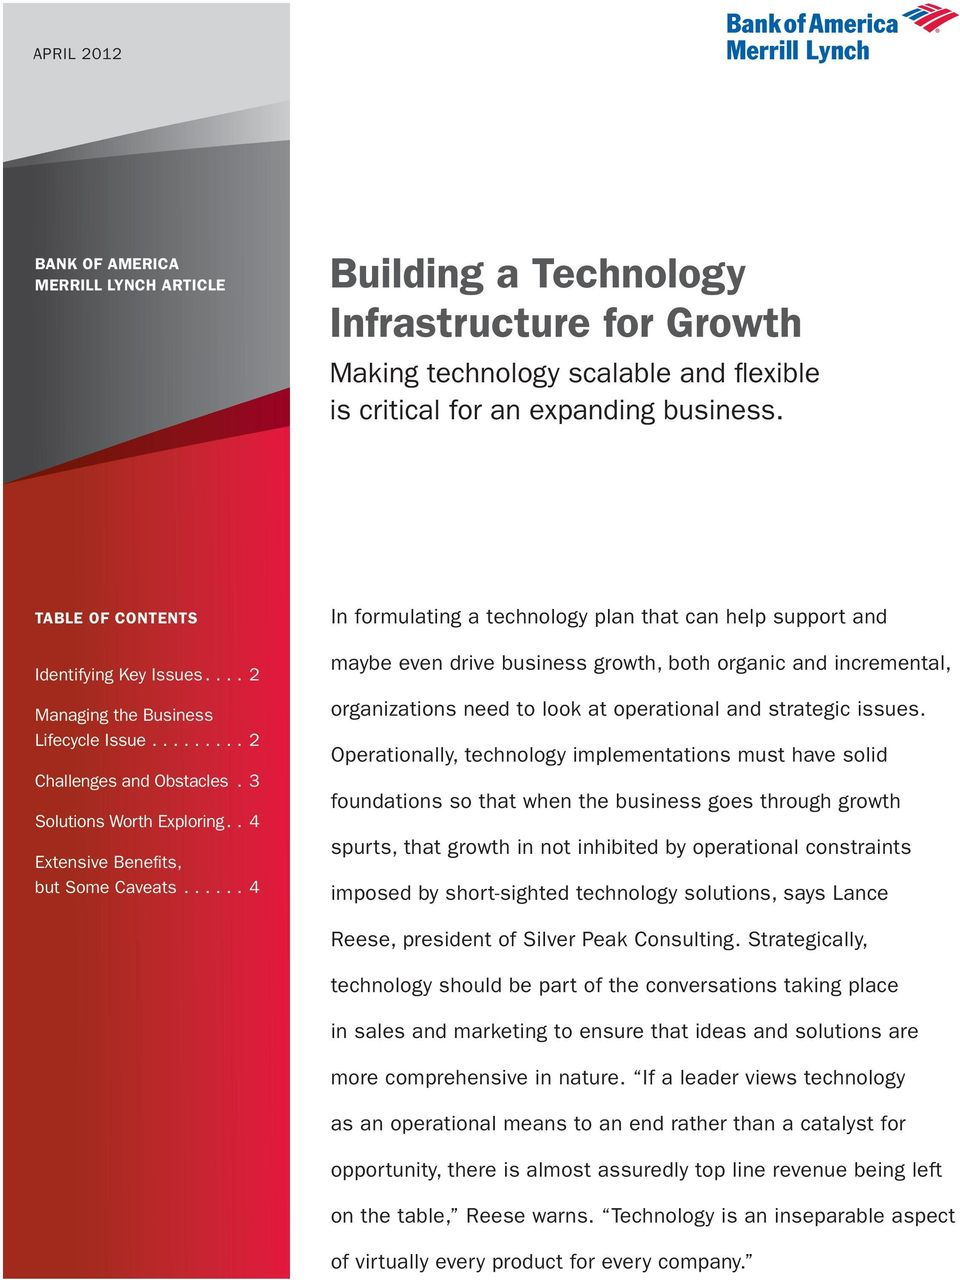 .. 4 In formulating a technology plan that can help support and maybe even drive business growth, both organic and incremental, organizations need to look at operational and strategic issues.